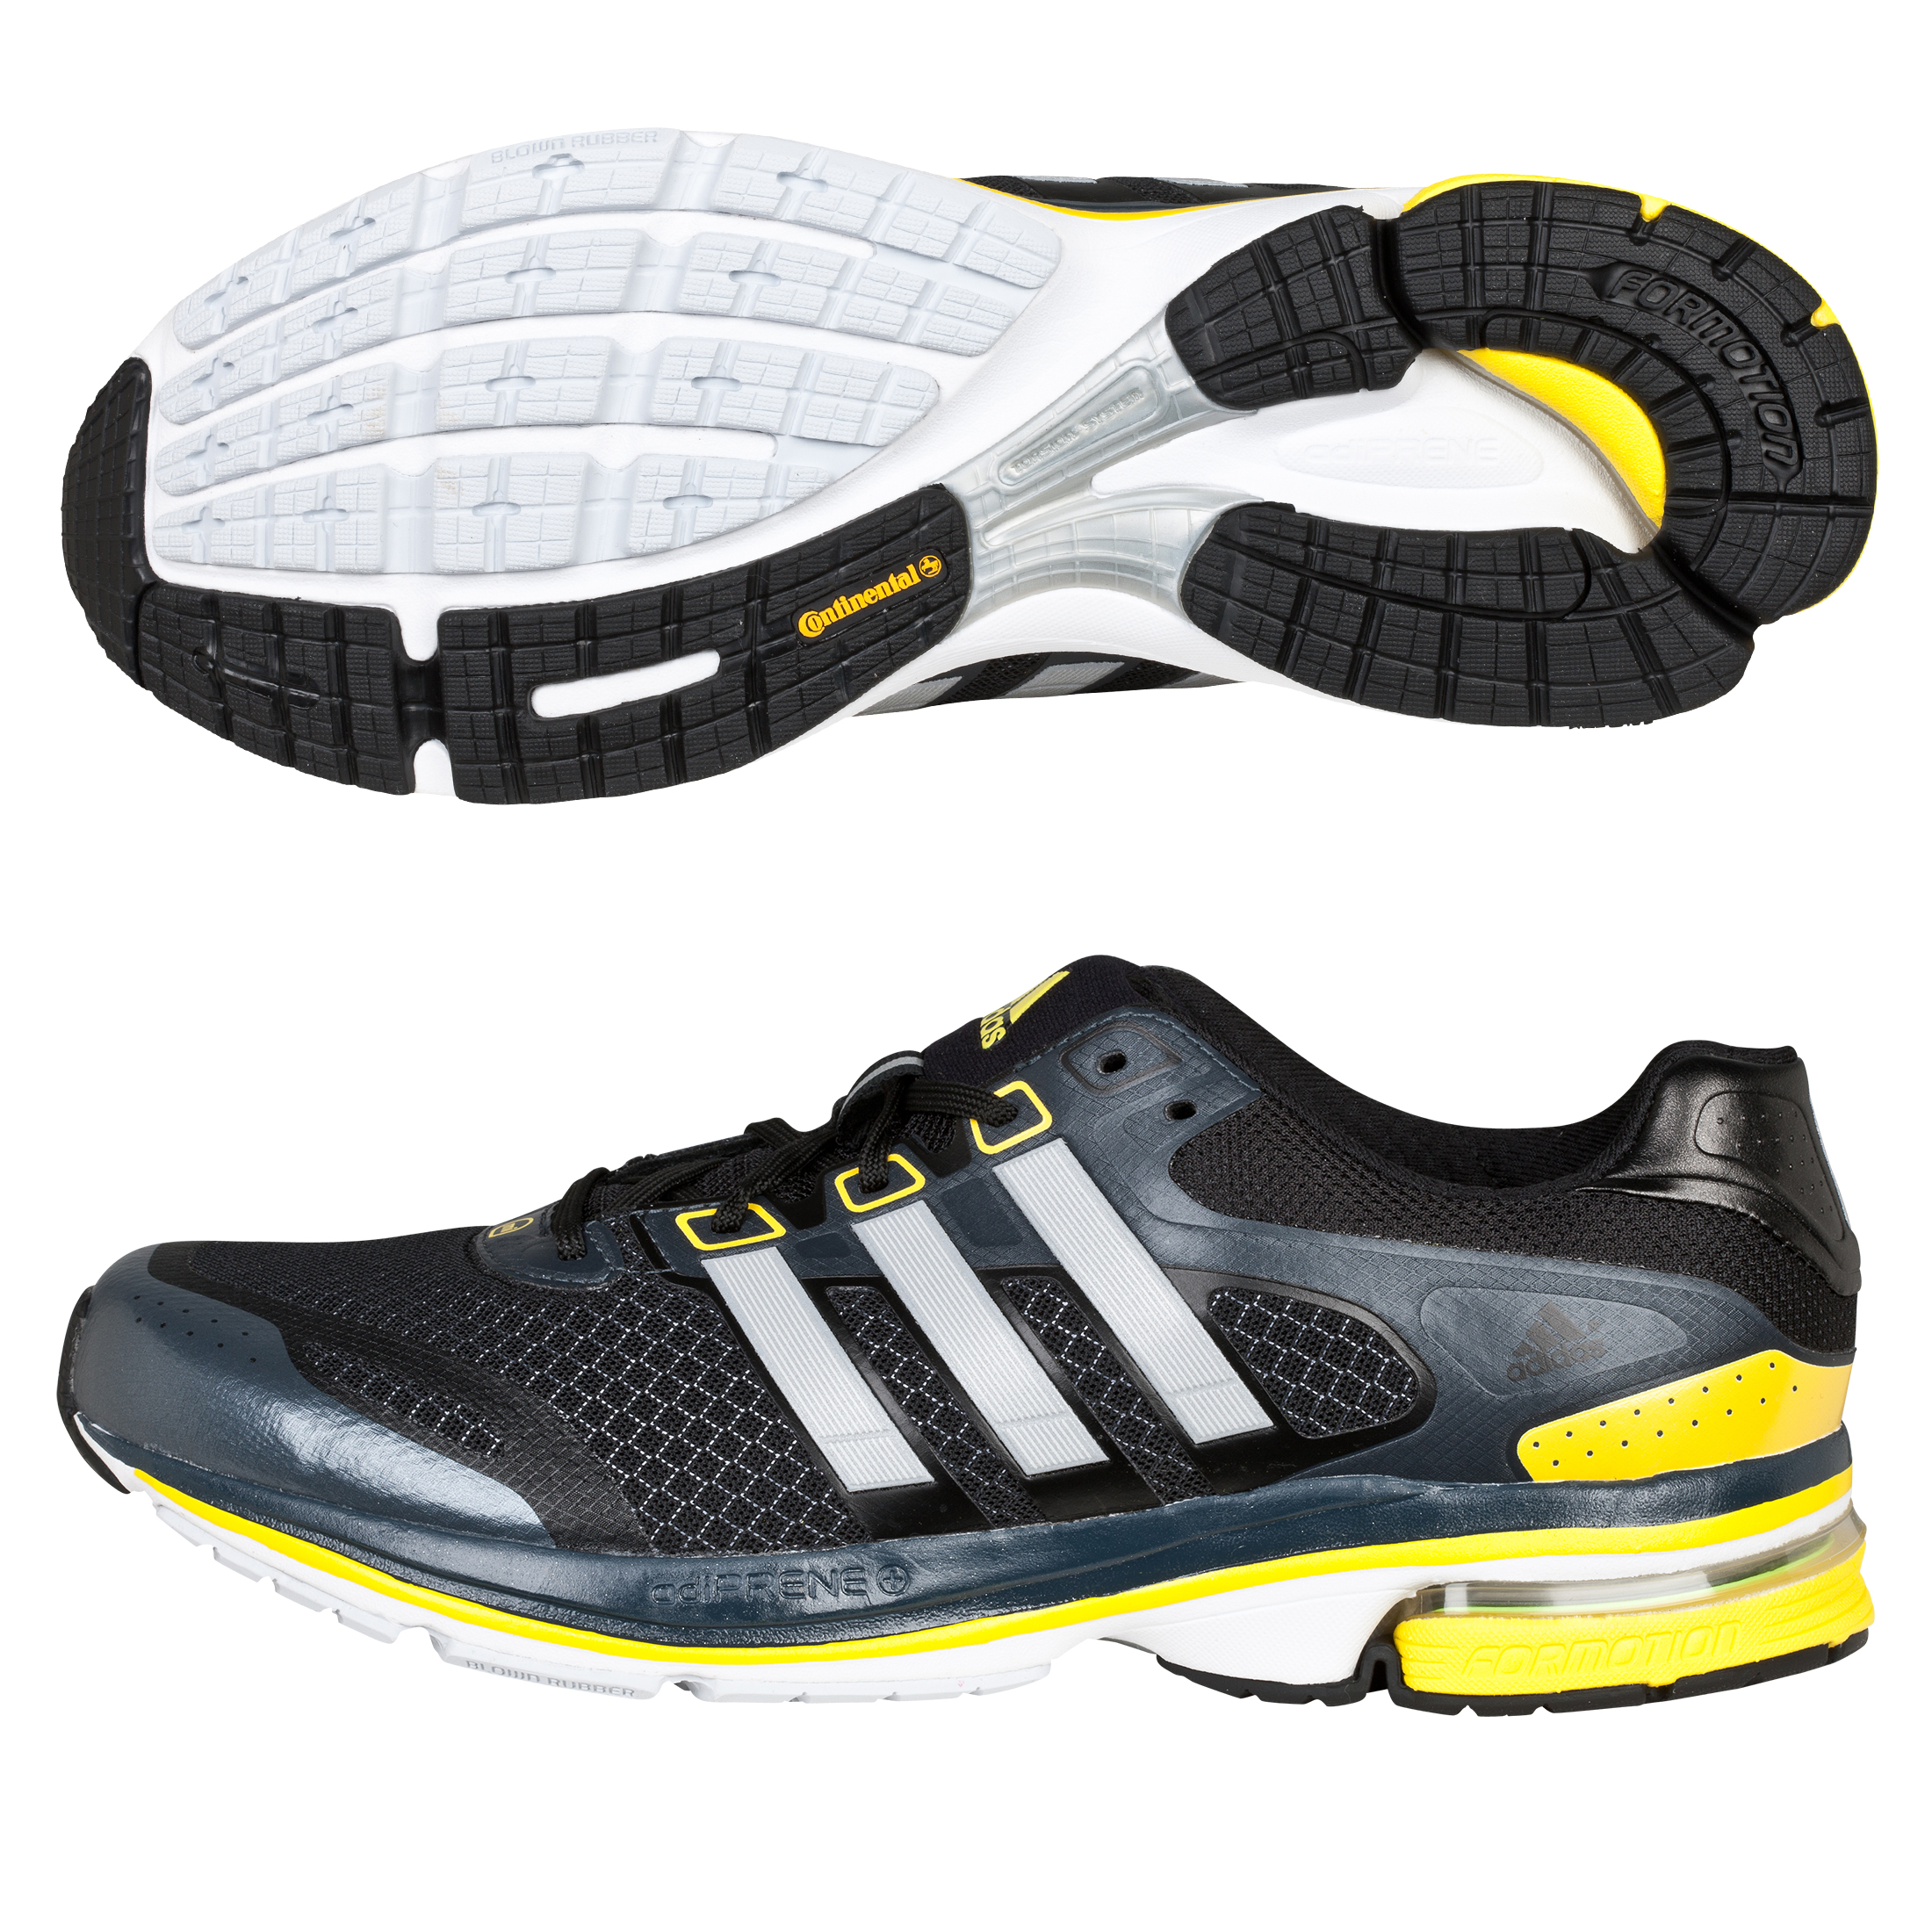 Adidas Supernova Glide 5 Trainers - Black/Metallic Silver/Vivid Yellow